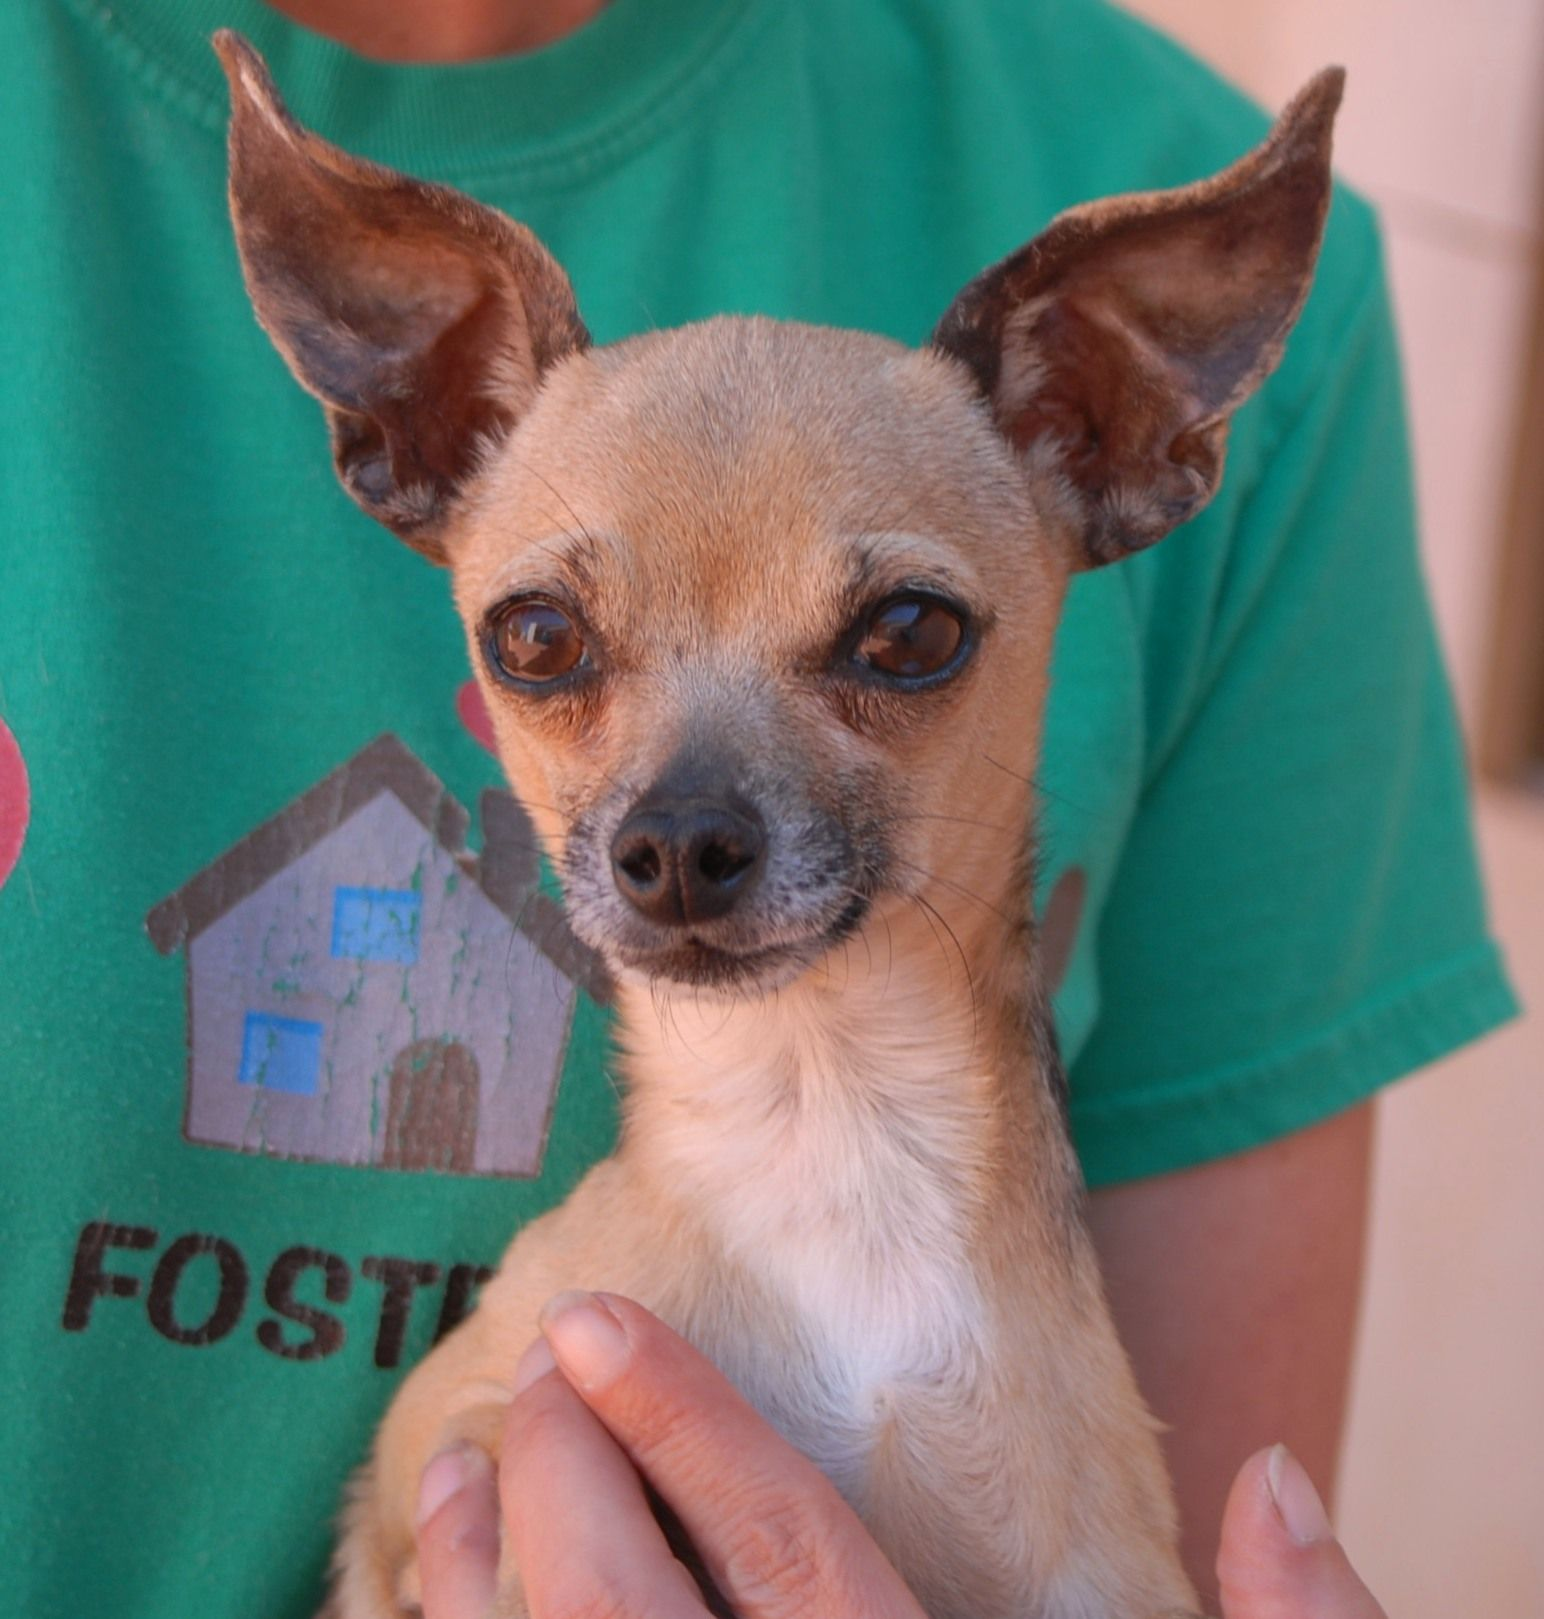 Wolfgang is a tiny, 4pound Chihuahua found injured near